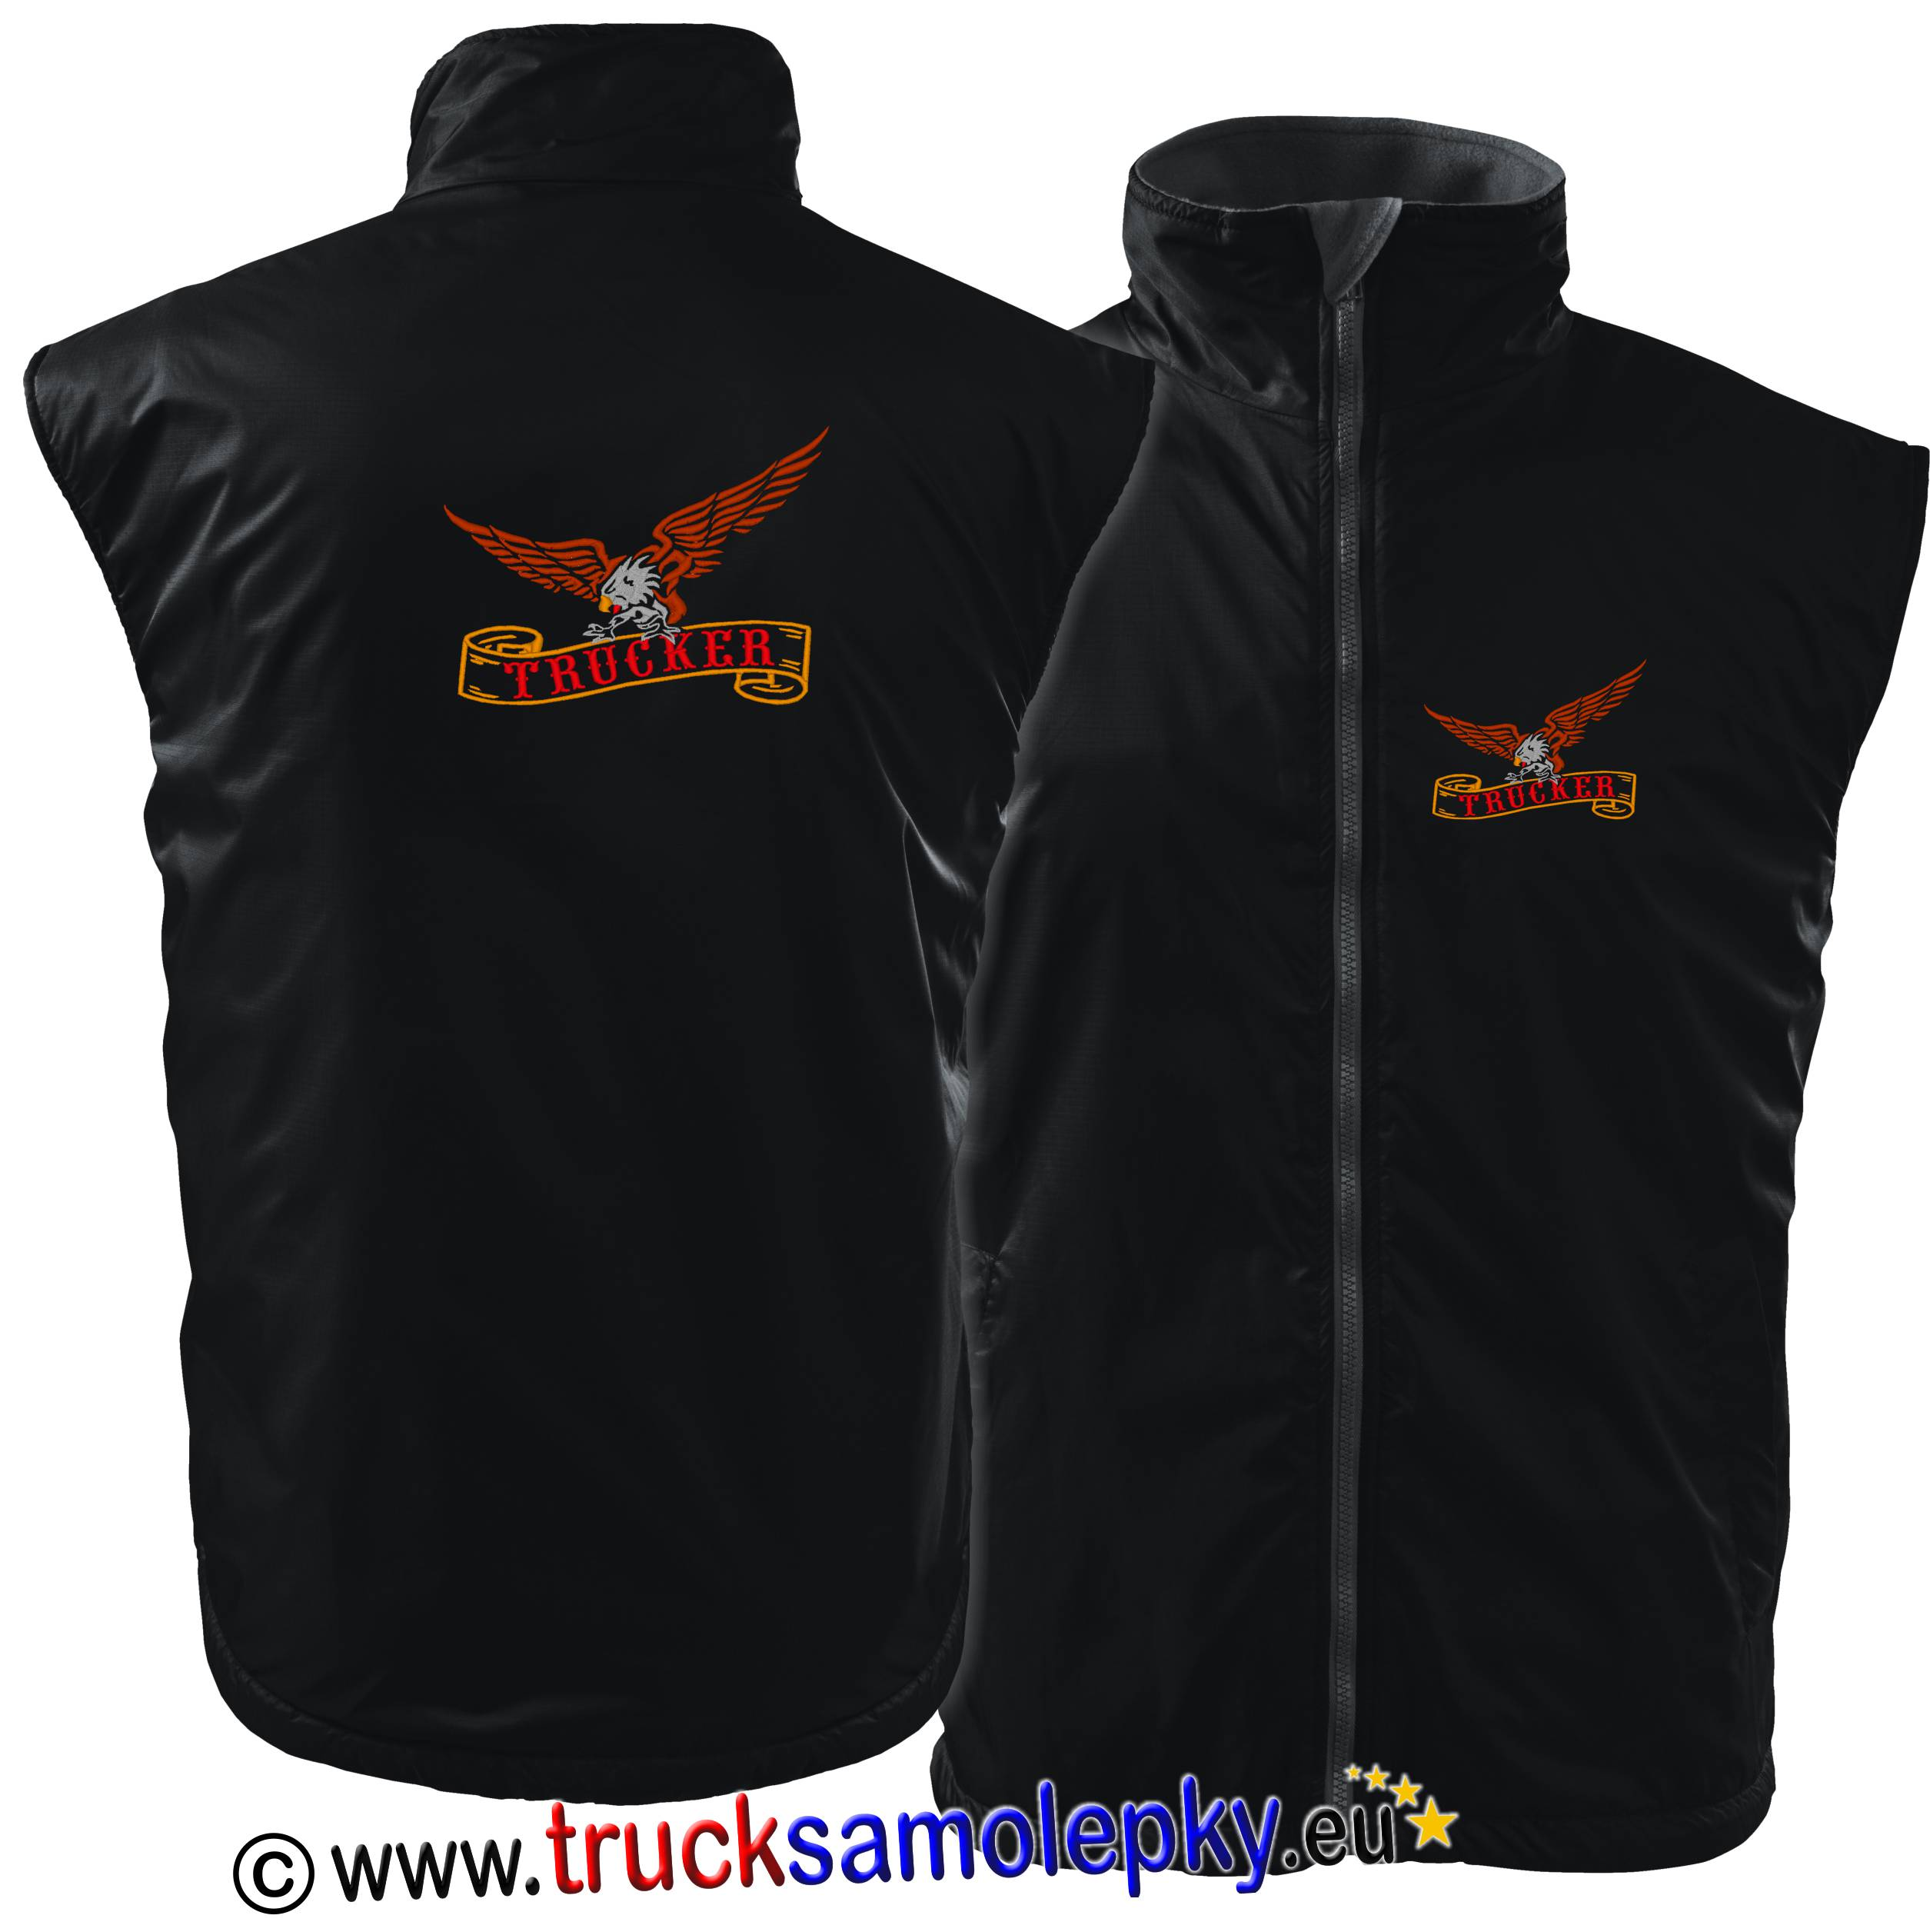 Vesta body warmer TRUCKER ORLICE